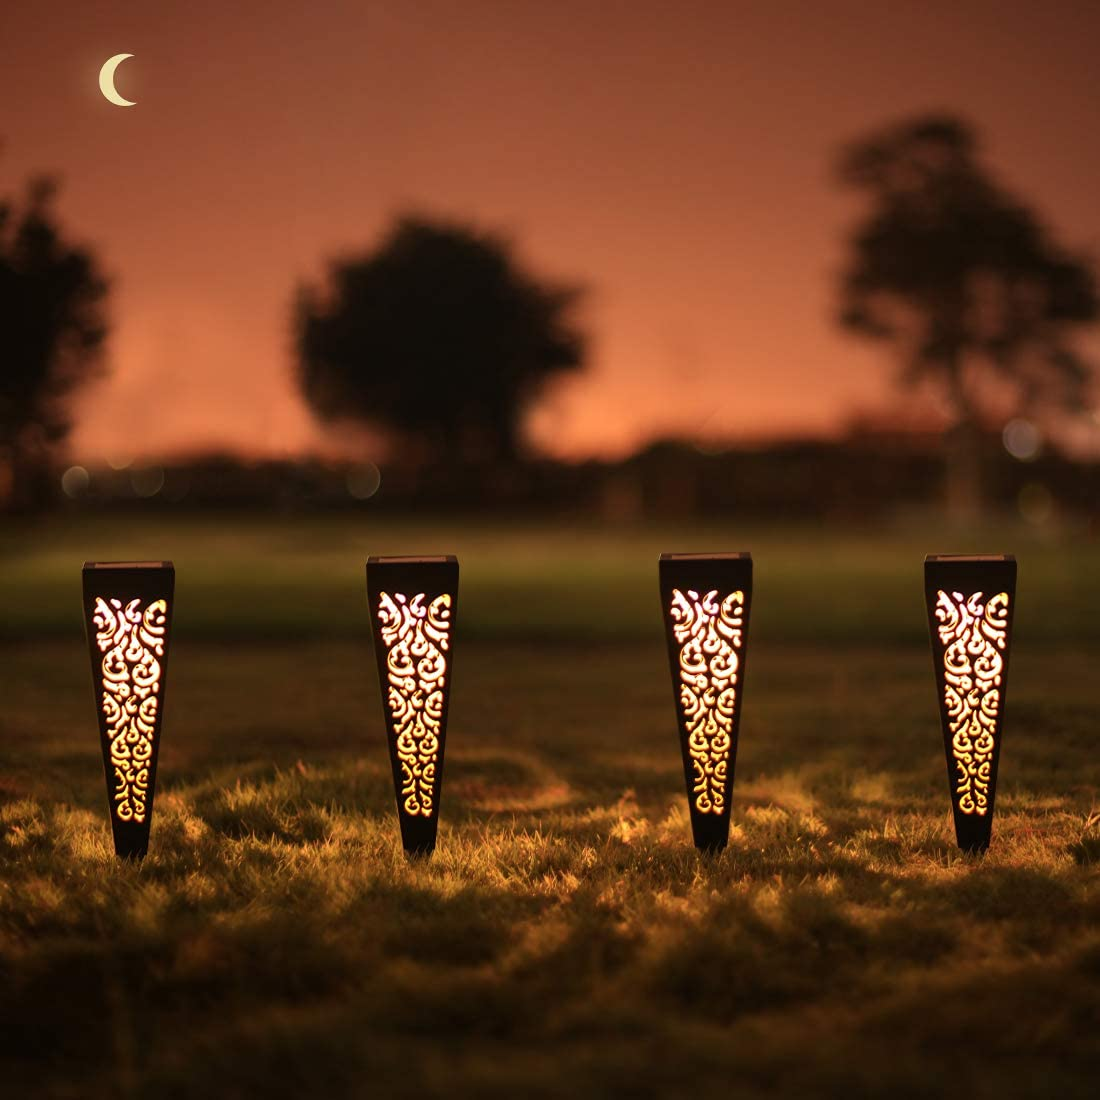 6Pcs Solar Pathway Garden Lights Outdoor Decorative Stakes, Waterproof LED Landscape Lighting for Lawn, Walkway, Patio, Yard (8 Lumens)